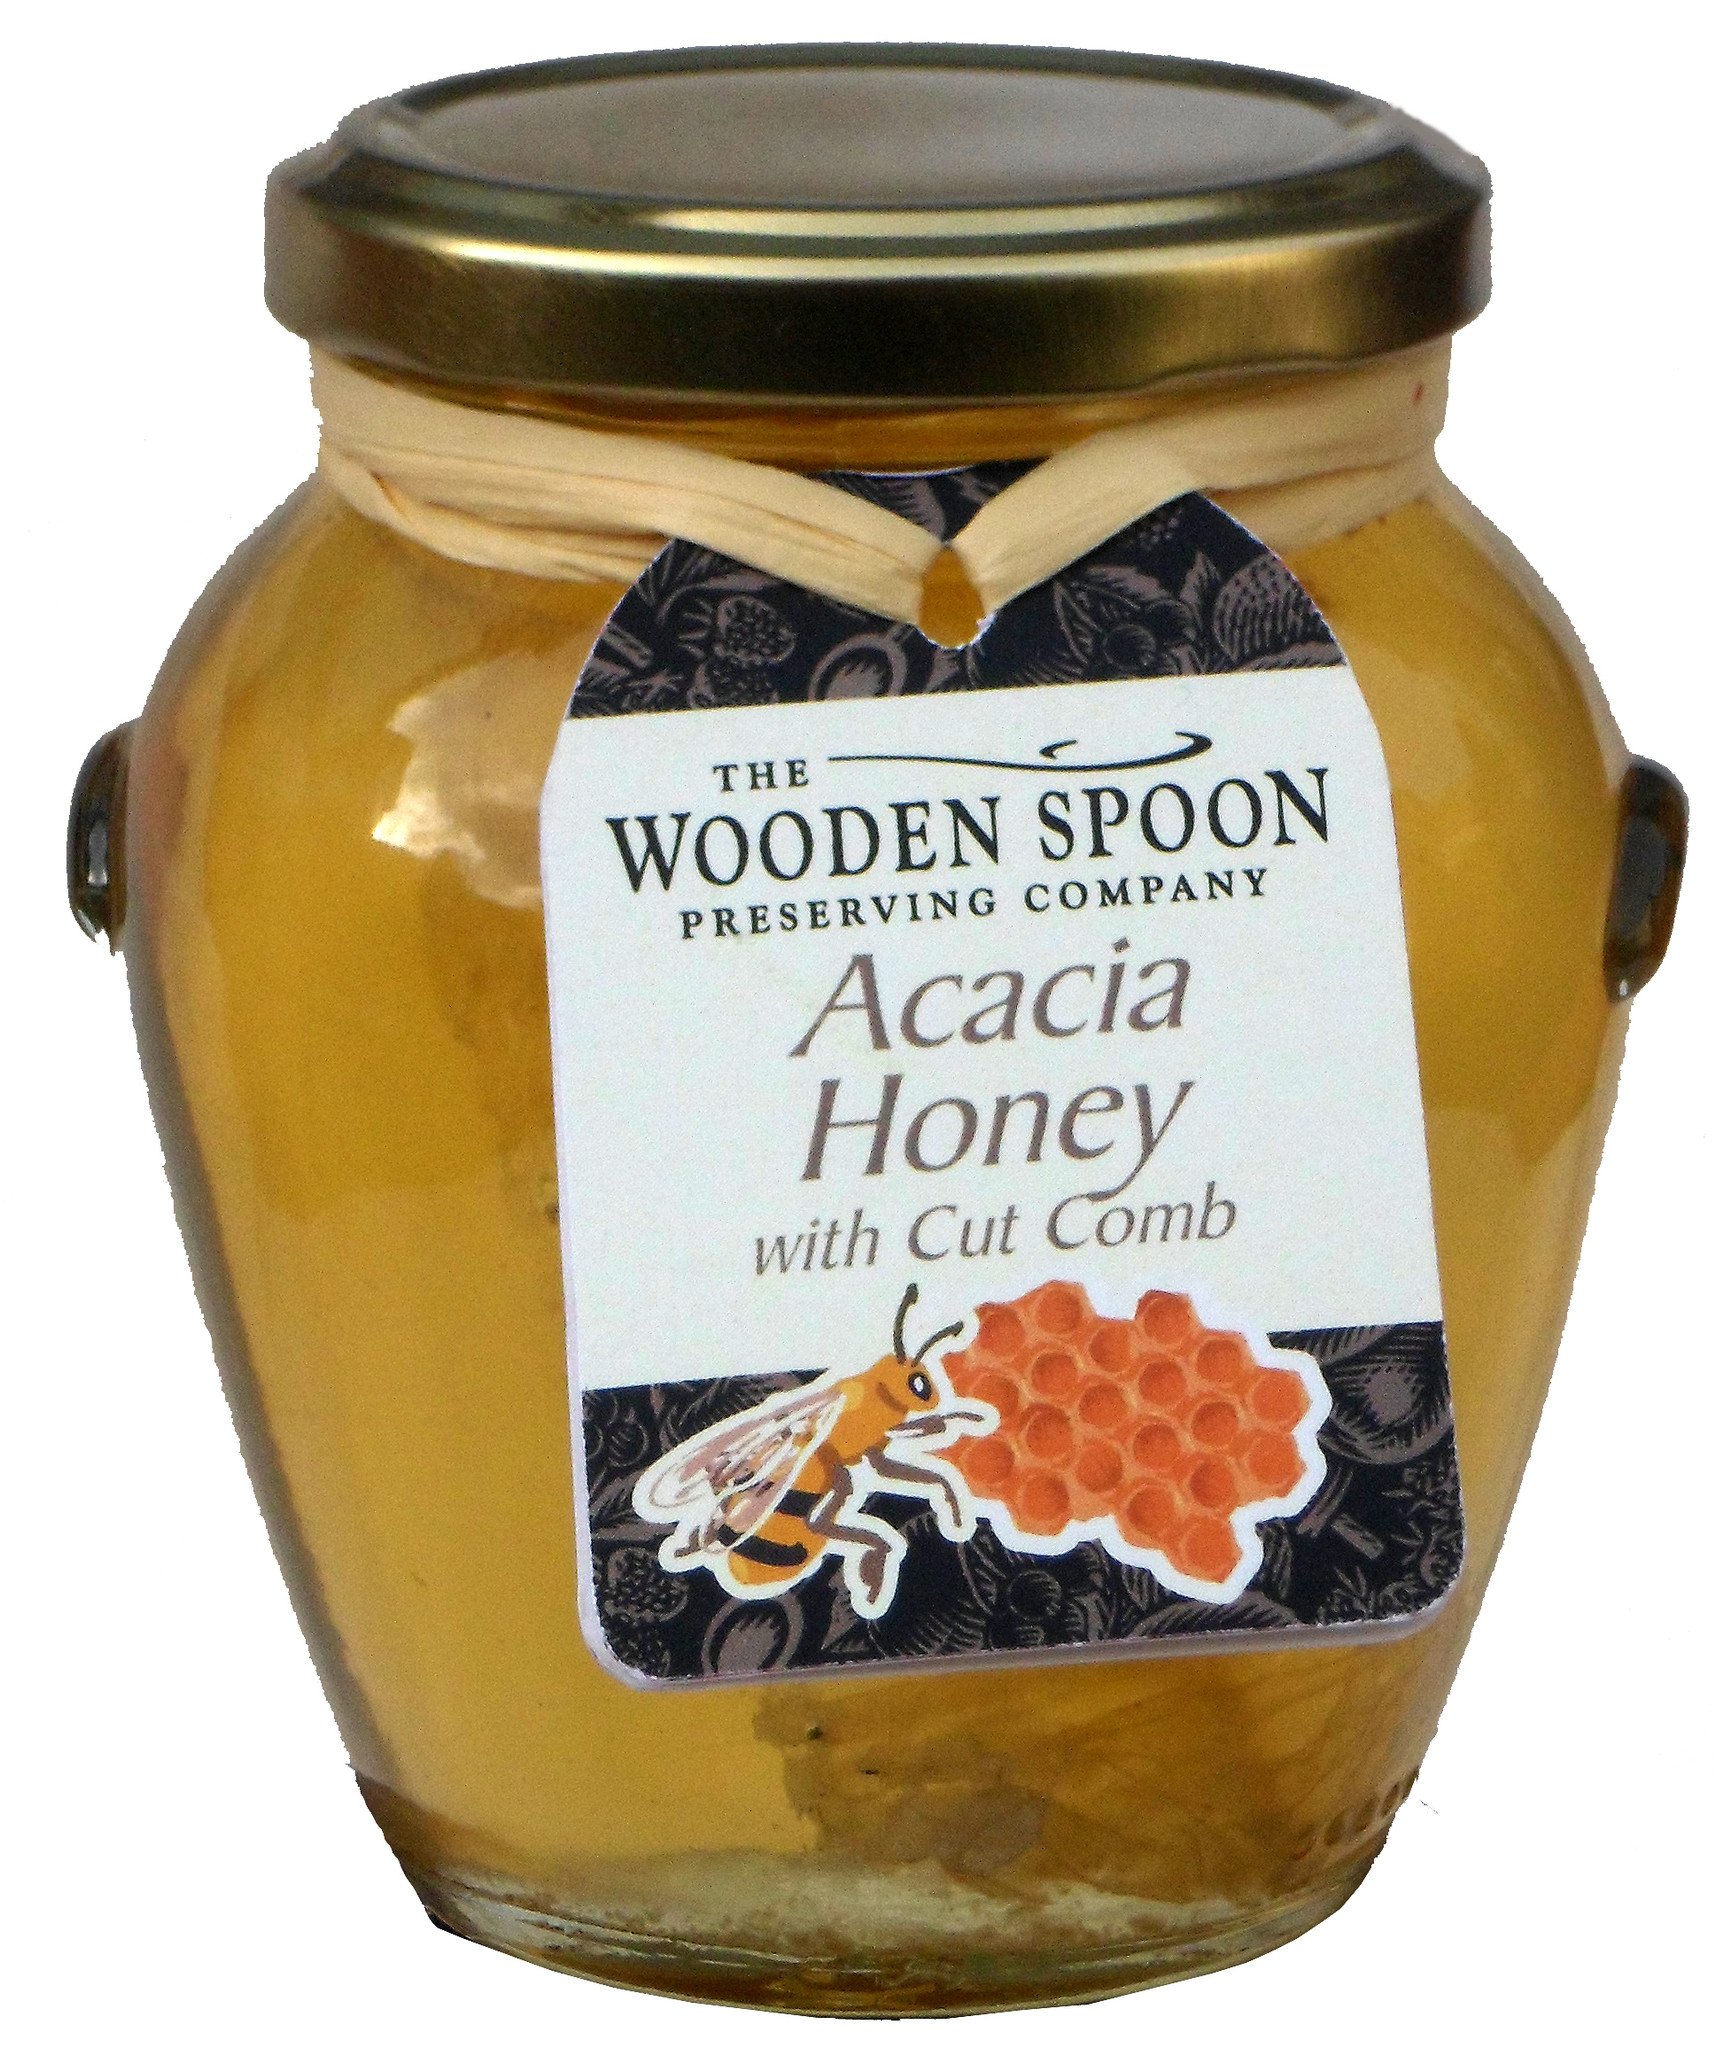 Acacia Honey with Acacia Cut Comb in a Gift Jar